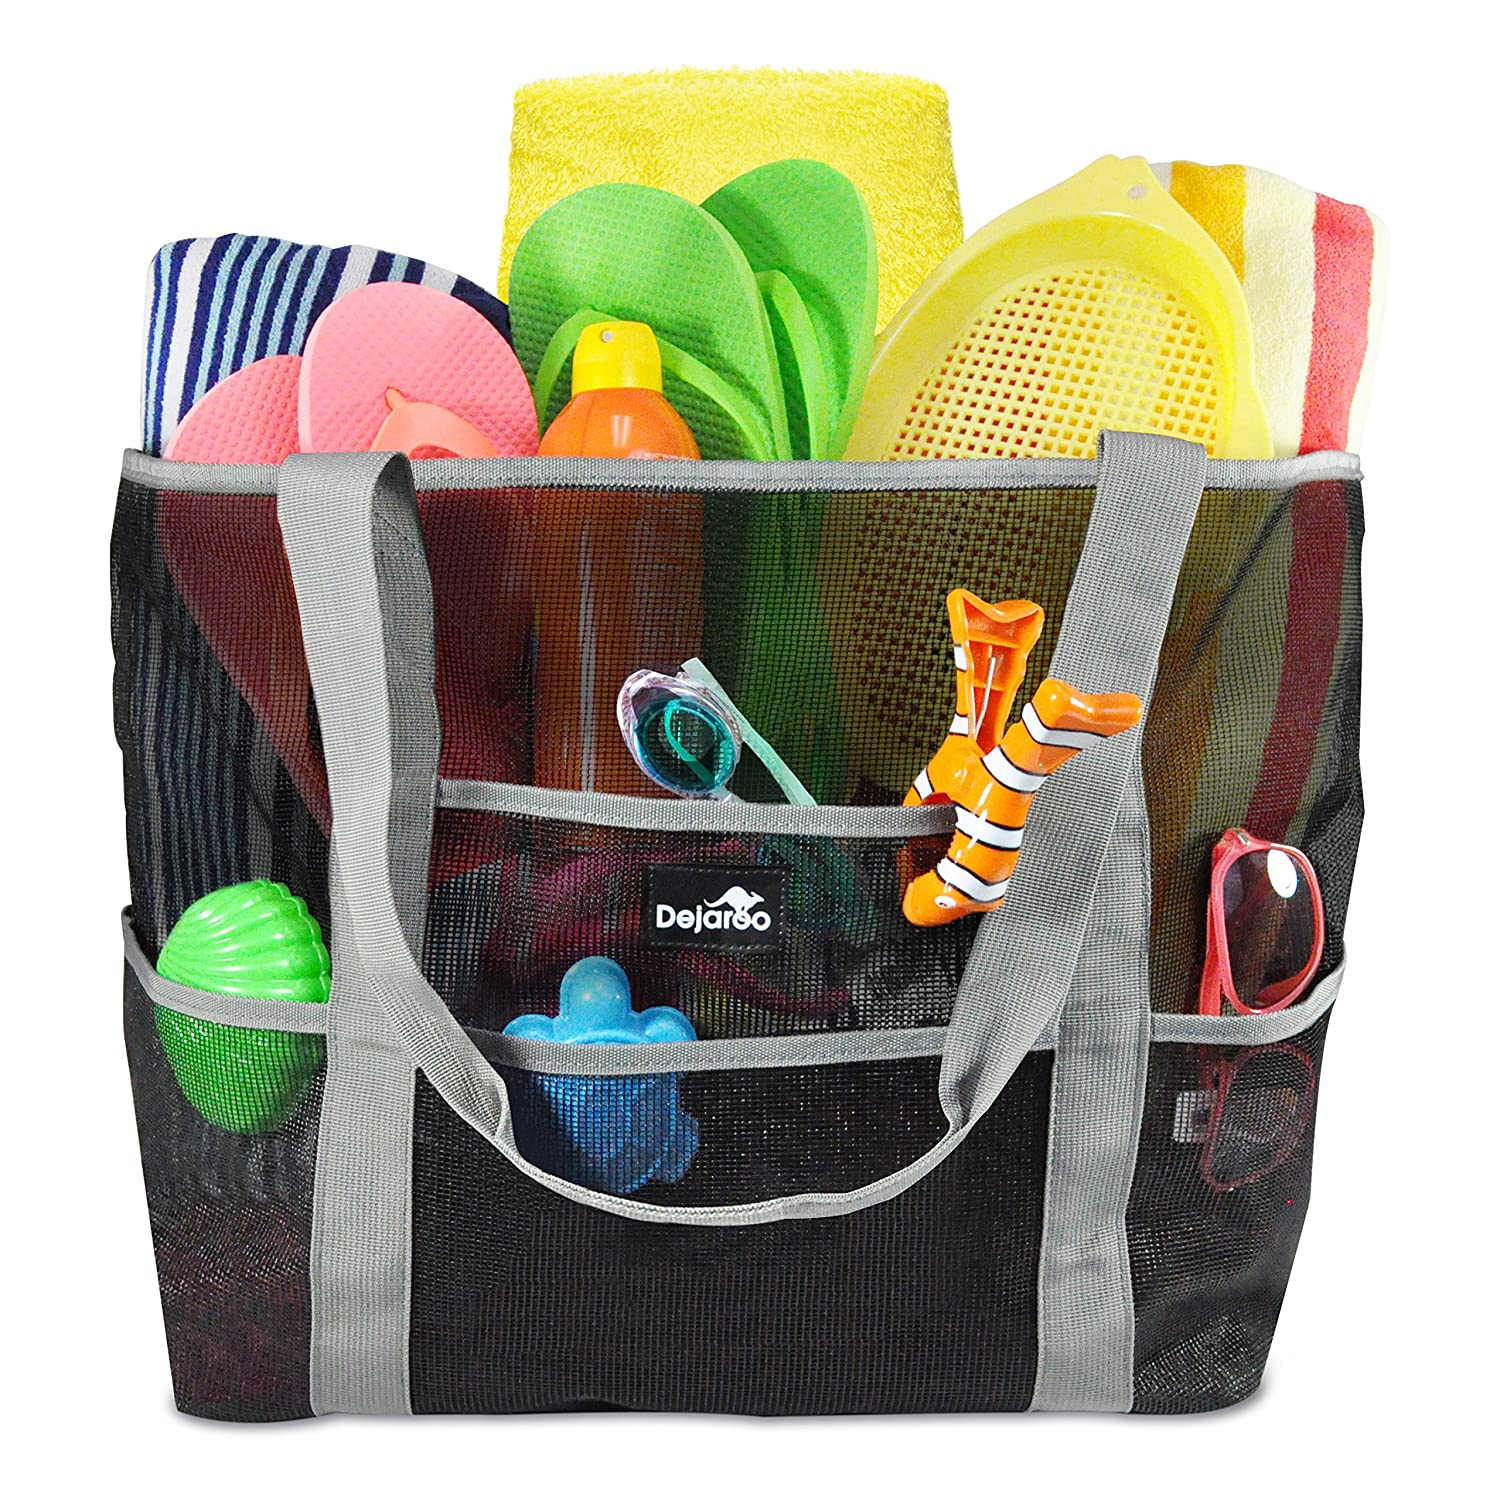 Travel Totes | Amazon.com